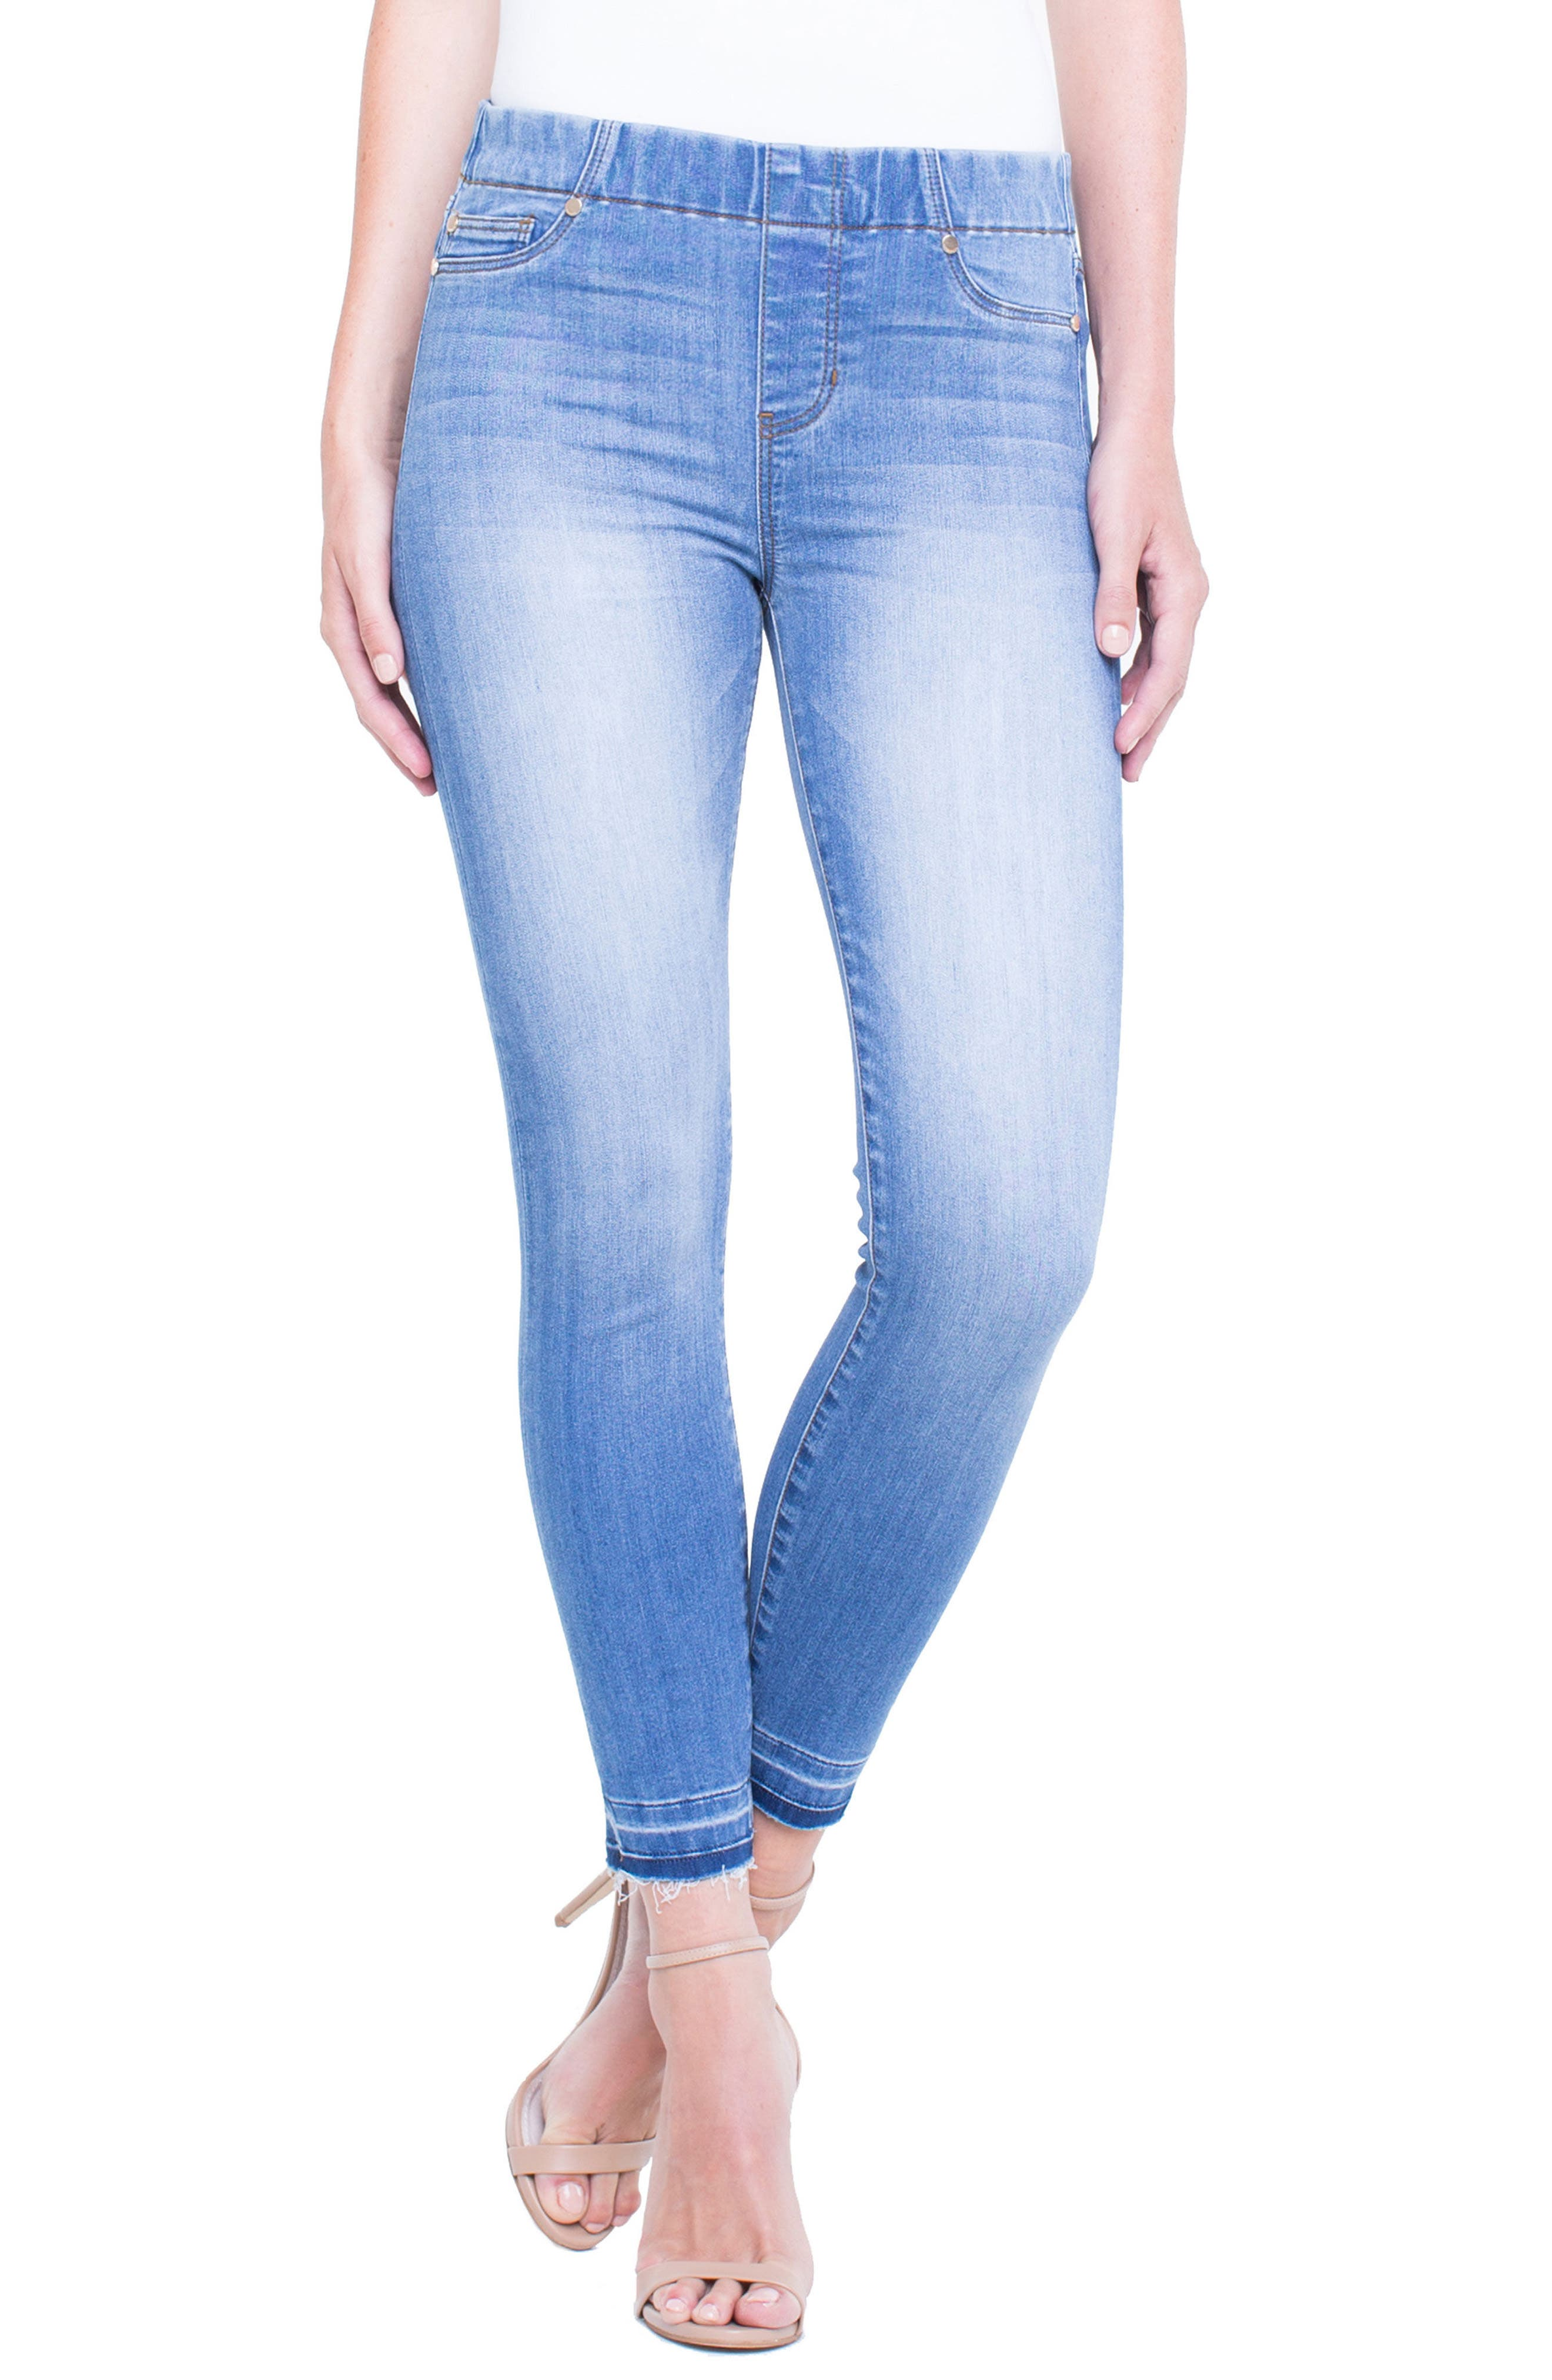 Chloe Release Hem Denim Leggings,                             Main thumbnail 1, color,                             RIDGEWAY GRIND